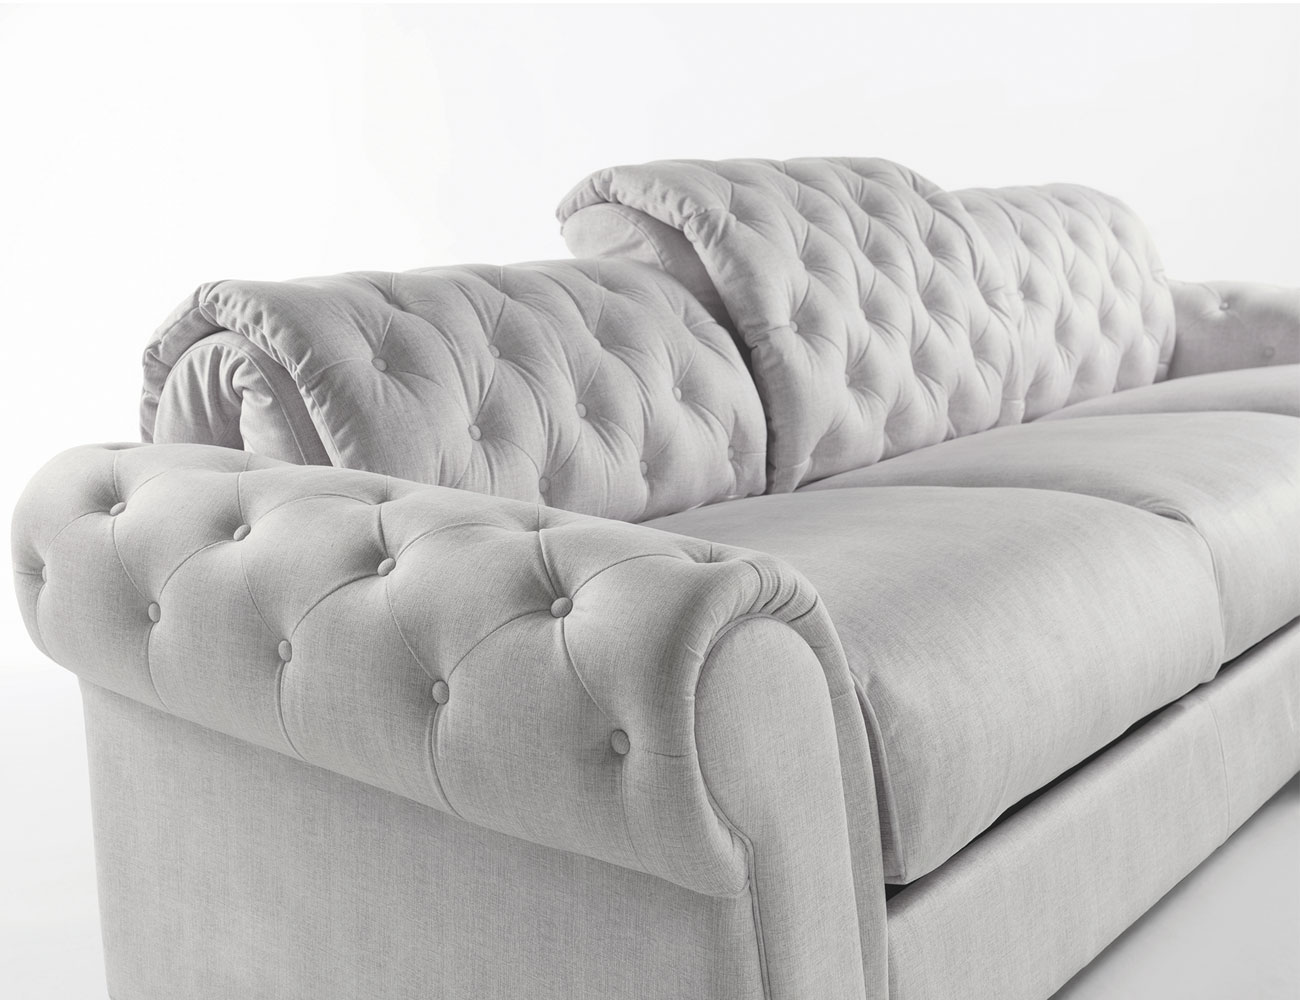 Sofa chaiselongue gran lujo decorativo capitone blanco tela 17